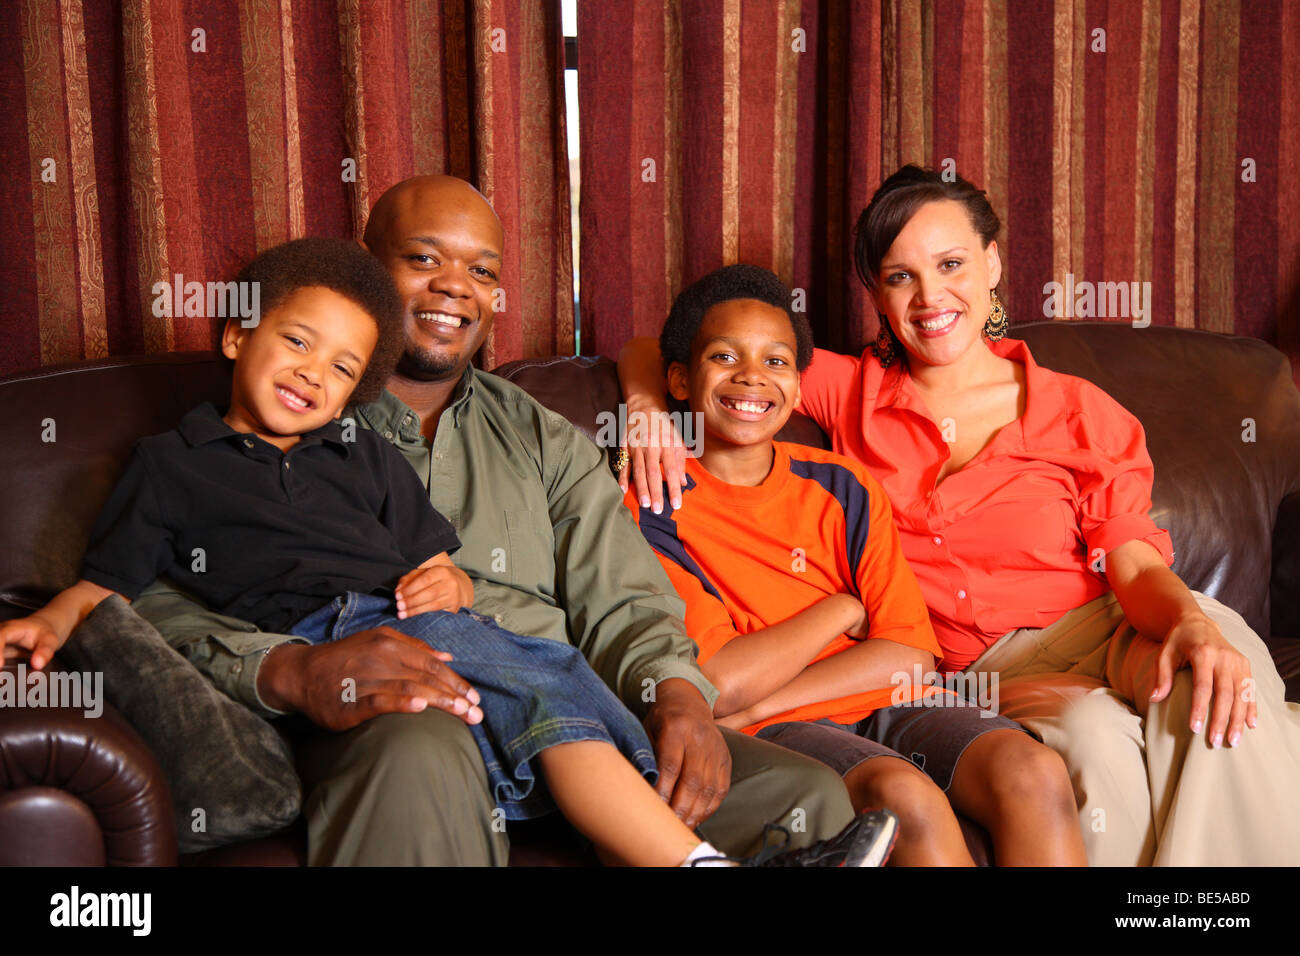 Family portrait on couch - Stock Image